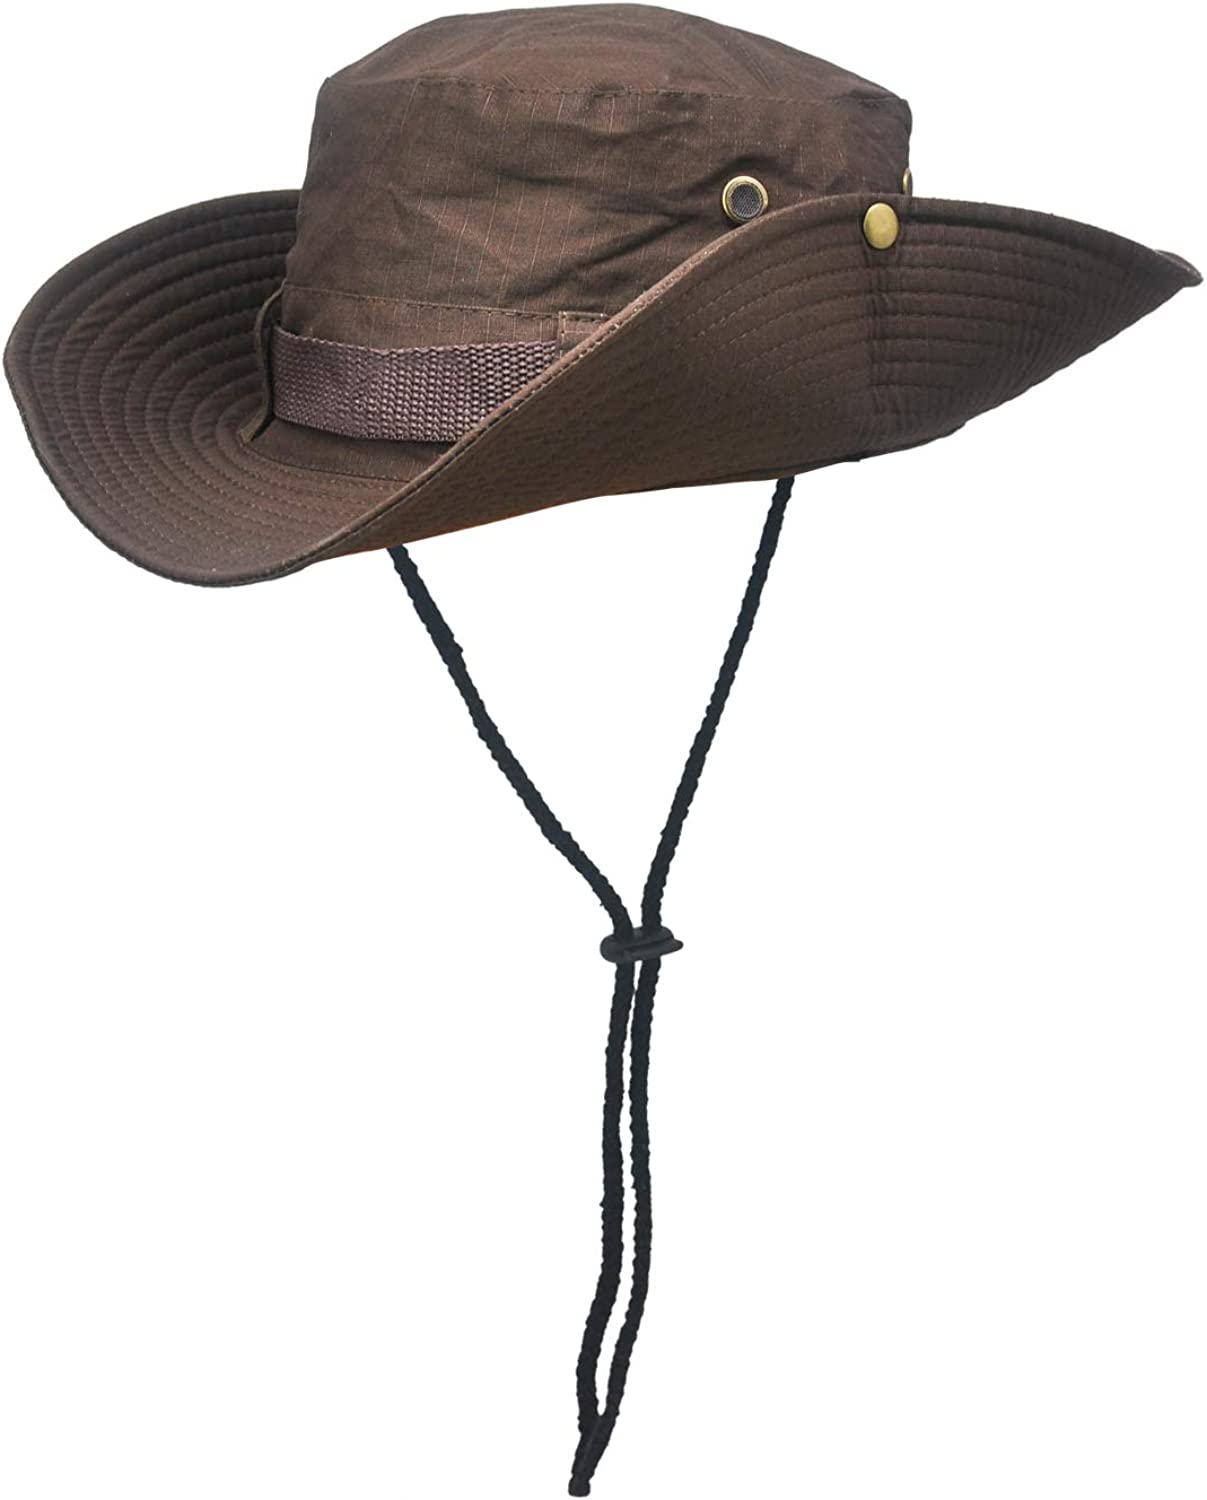 SKIBEAUT Sun Hat for Outdoor Sun Protection Wide Brimmed Breathable Packable Boonie Hat Brown